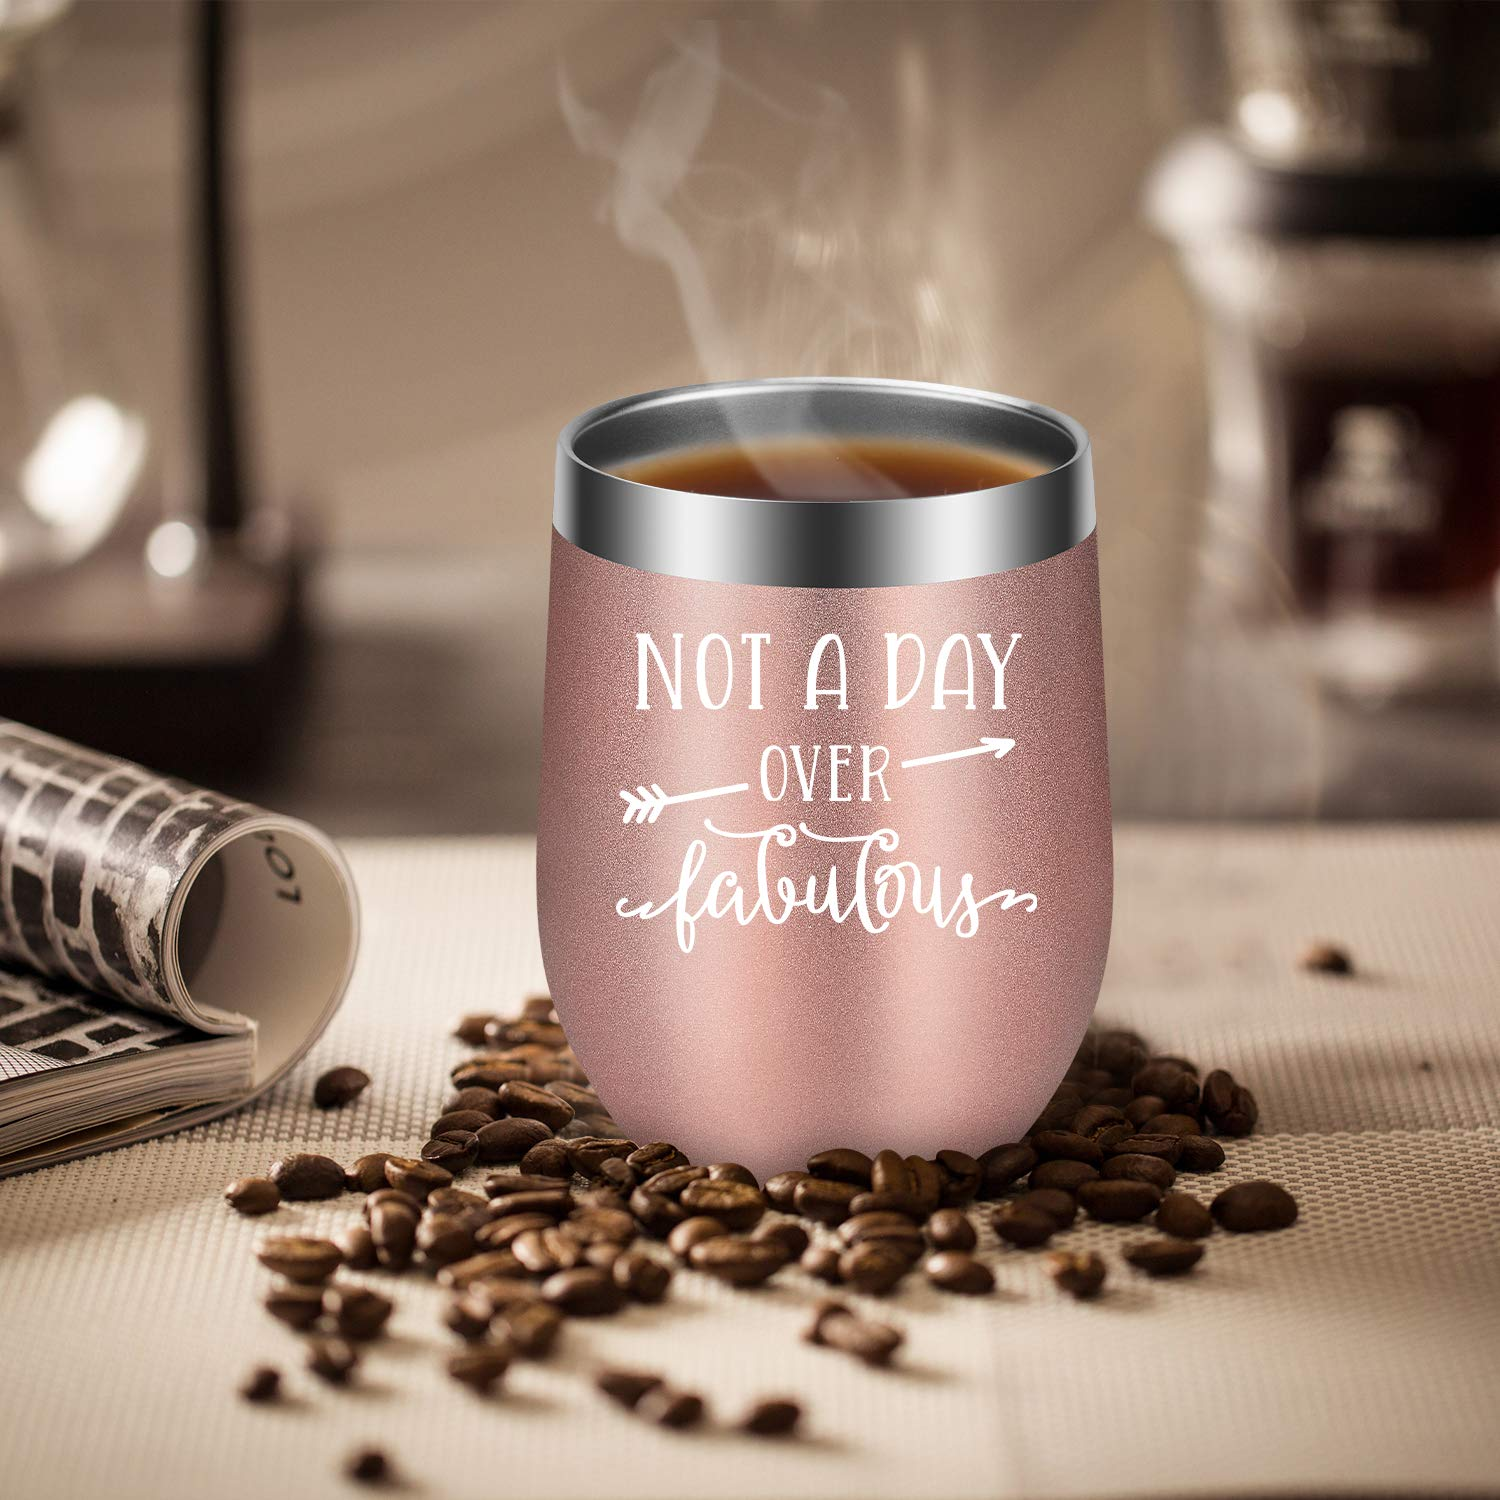 Not a Day Over Fabulous - Fun Birthday Gifts for Women - Funny Birthday Wine Gift Ideas for Her, Best Friend BFF, Mom, Grandma, Wife, Daughter, Sister, Aunt, Coworker - LEADO Birthday Wine Tumbler by LEADO (Image #7)